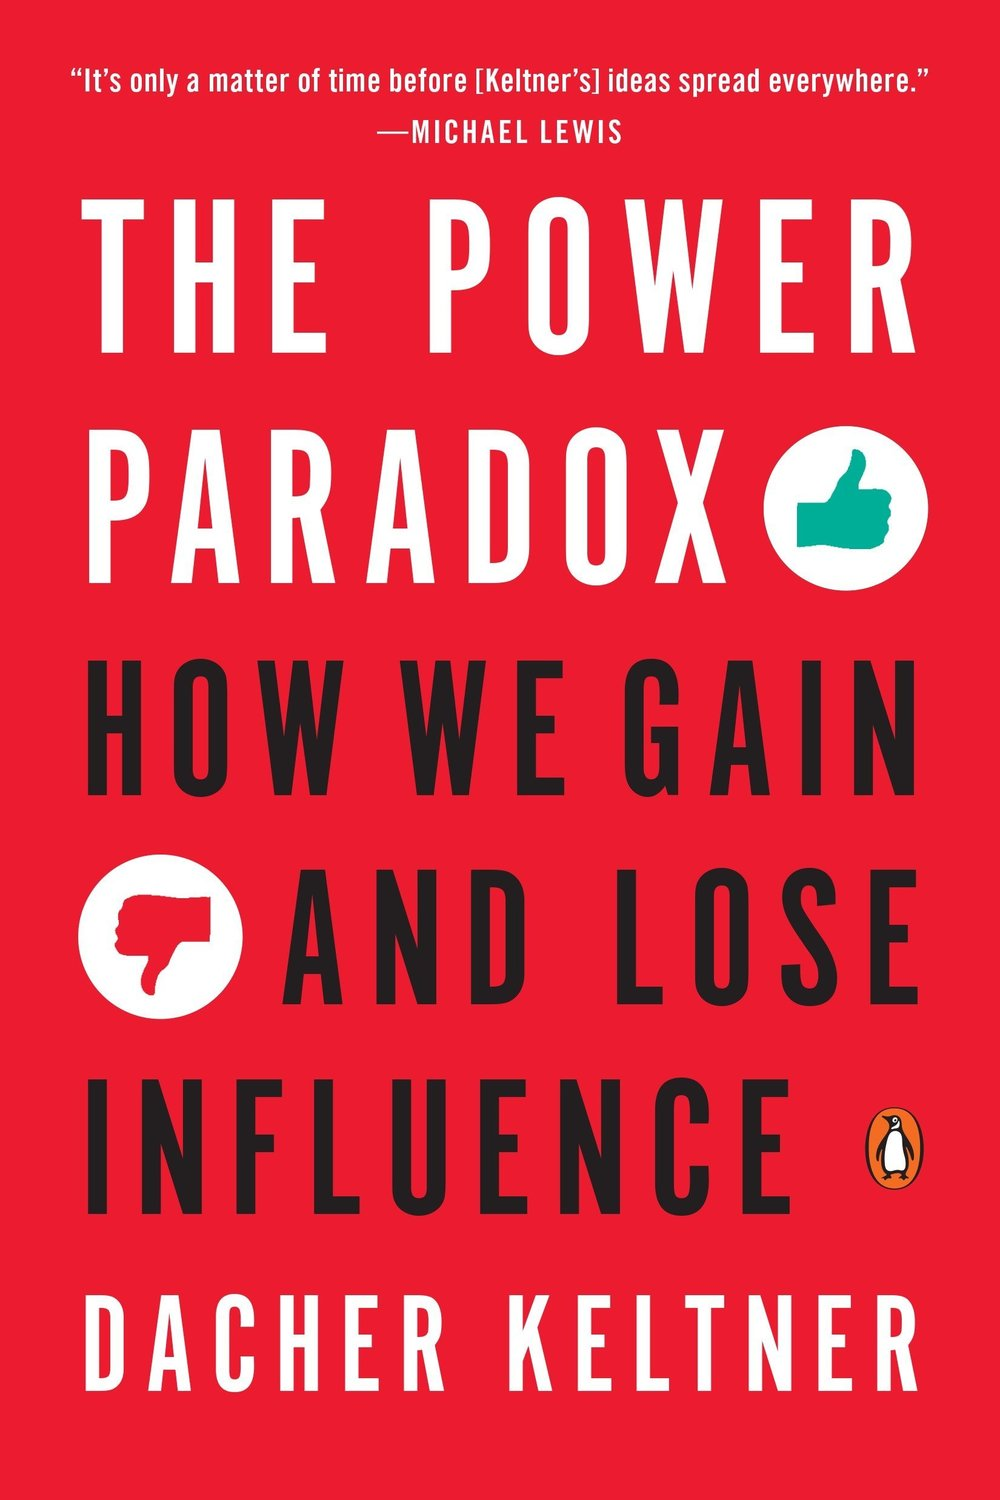 The Power Paradox - Dacher Keltner.jpg